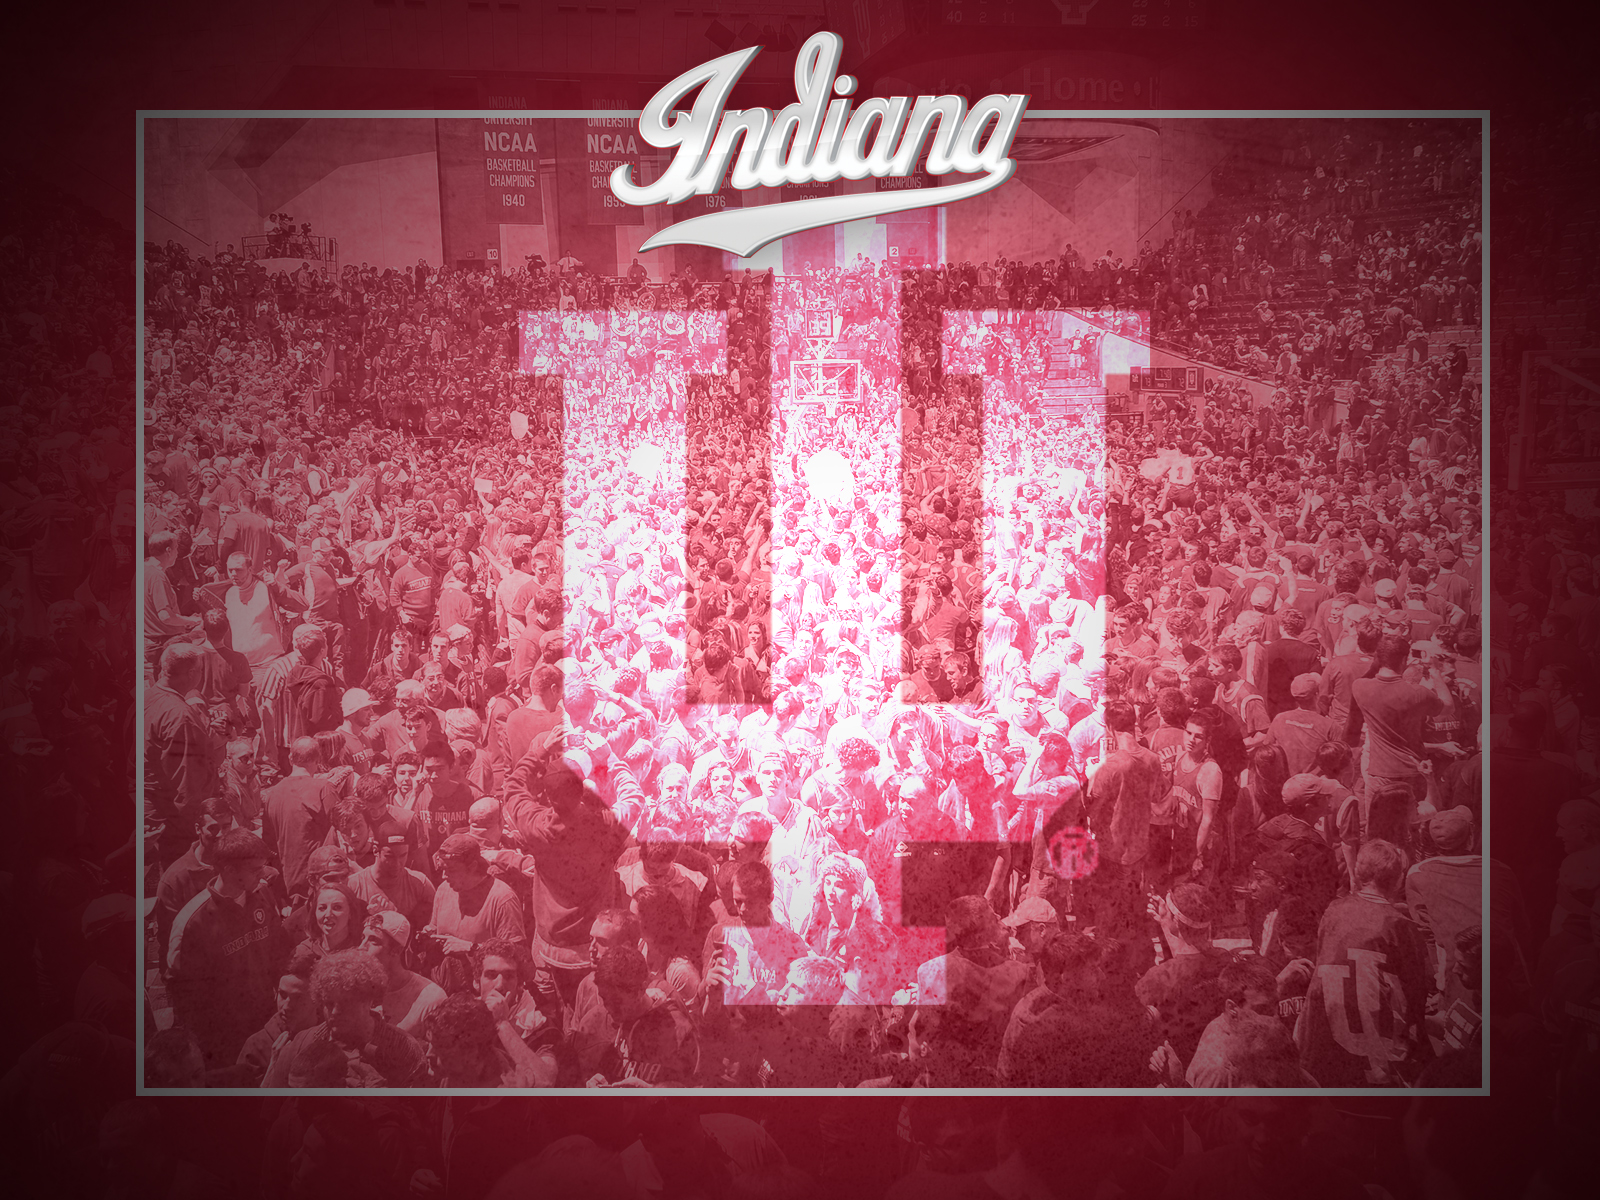 Indiana University Official Athletic Site   Multimedia 1600x1200